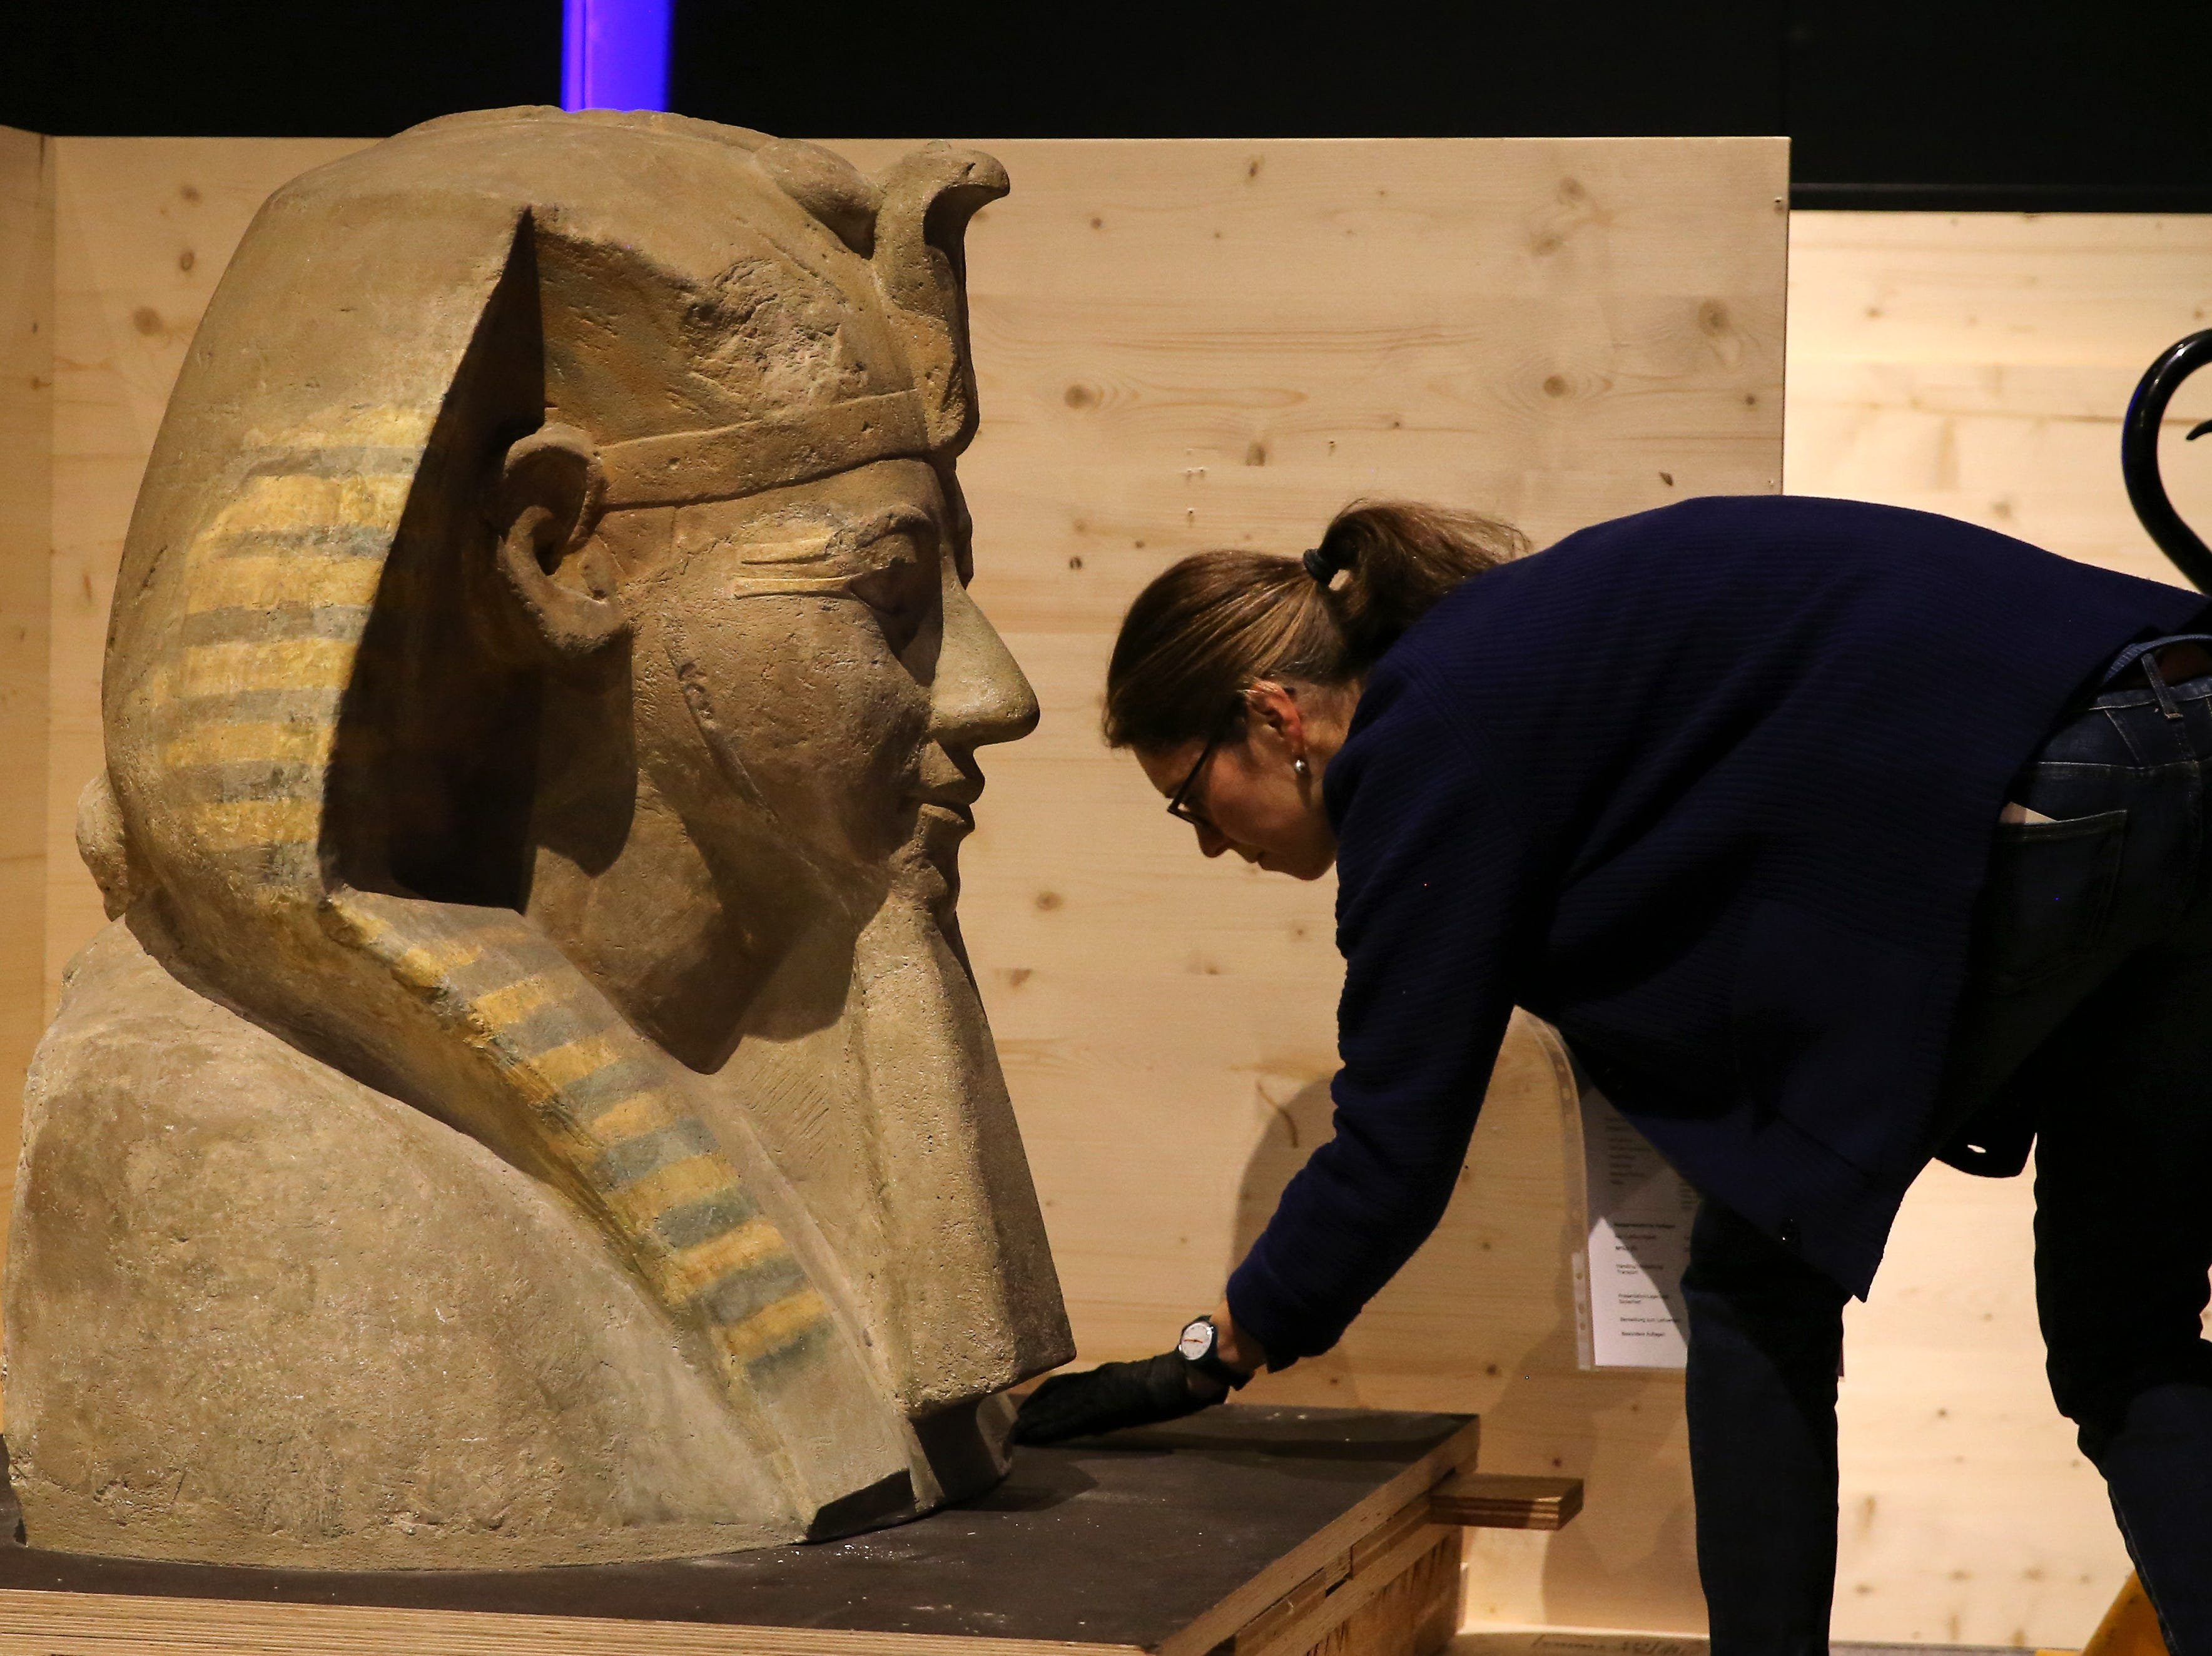 The sphinx head bust of the Pharaoh Hatshepsut, Egypt's longest-ruling woman, on loan from the Berlin Egyptian Museum, is inspected by conservator Claudia Schindler as it is uncrated for display.